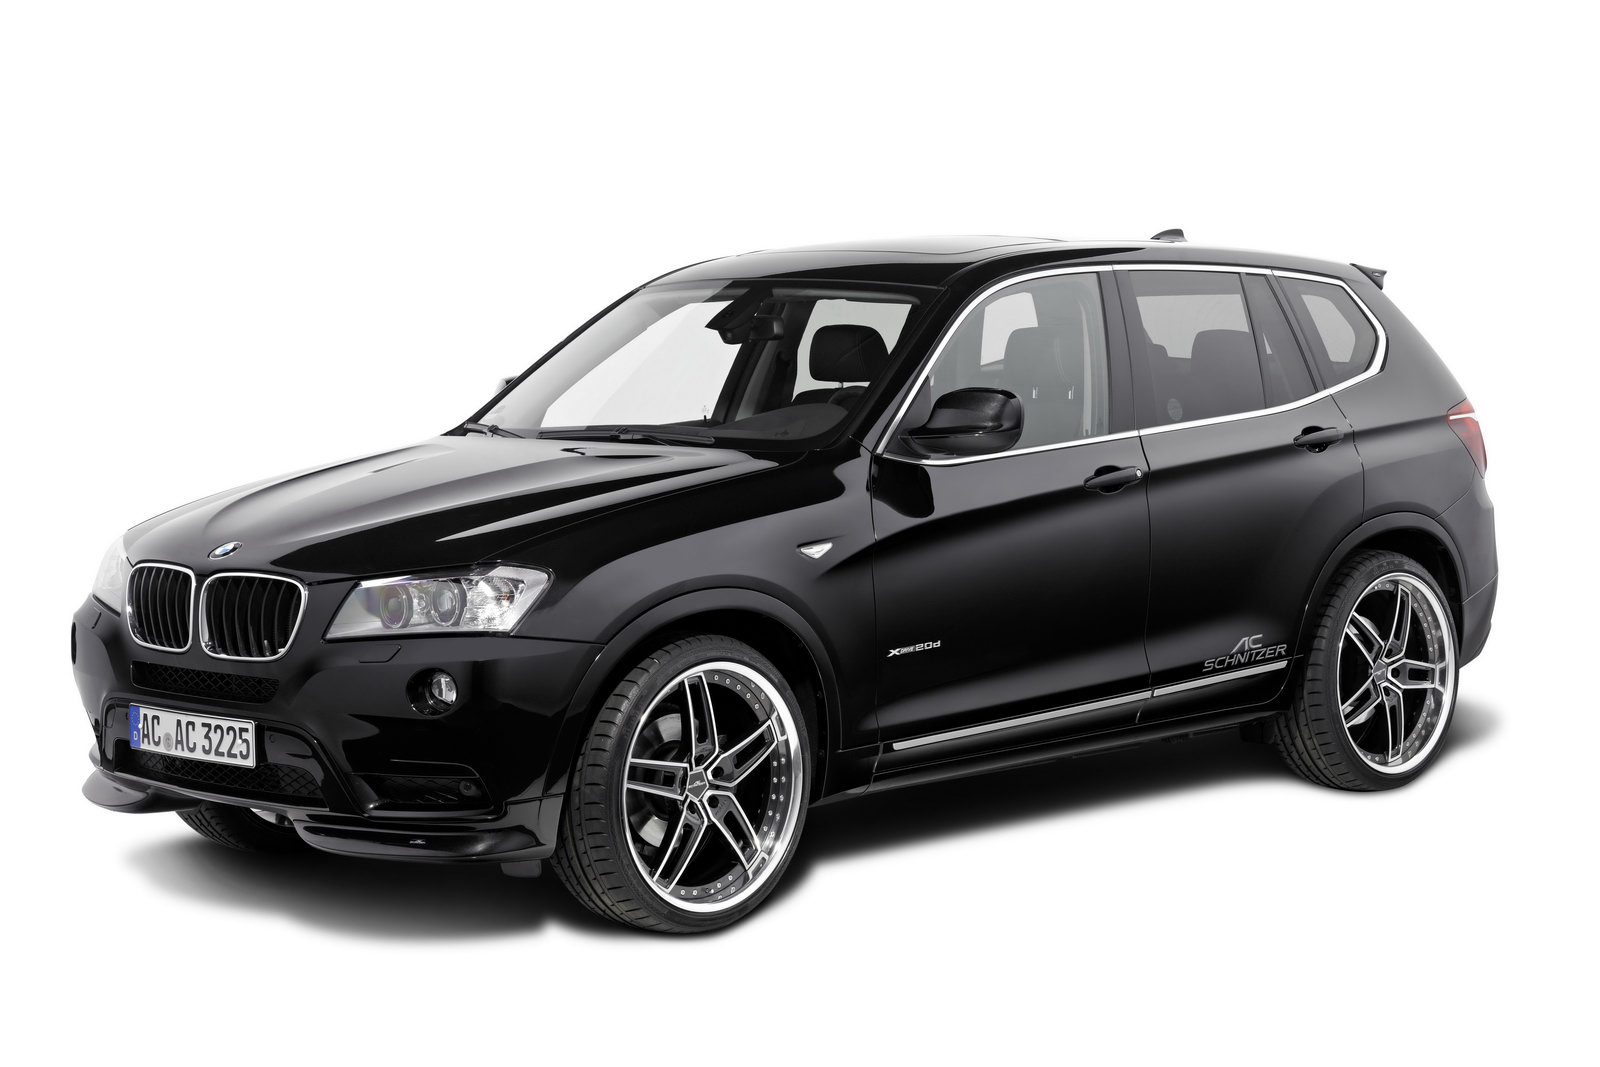 ac schnitzer tuned bmw x3 cuv. Black Bedroom Furniture Sets. Home Design Ideas